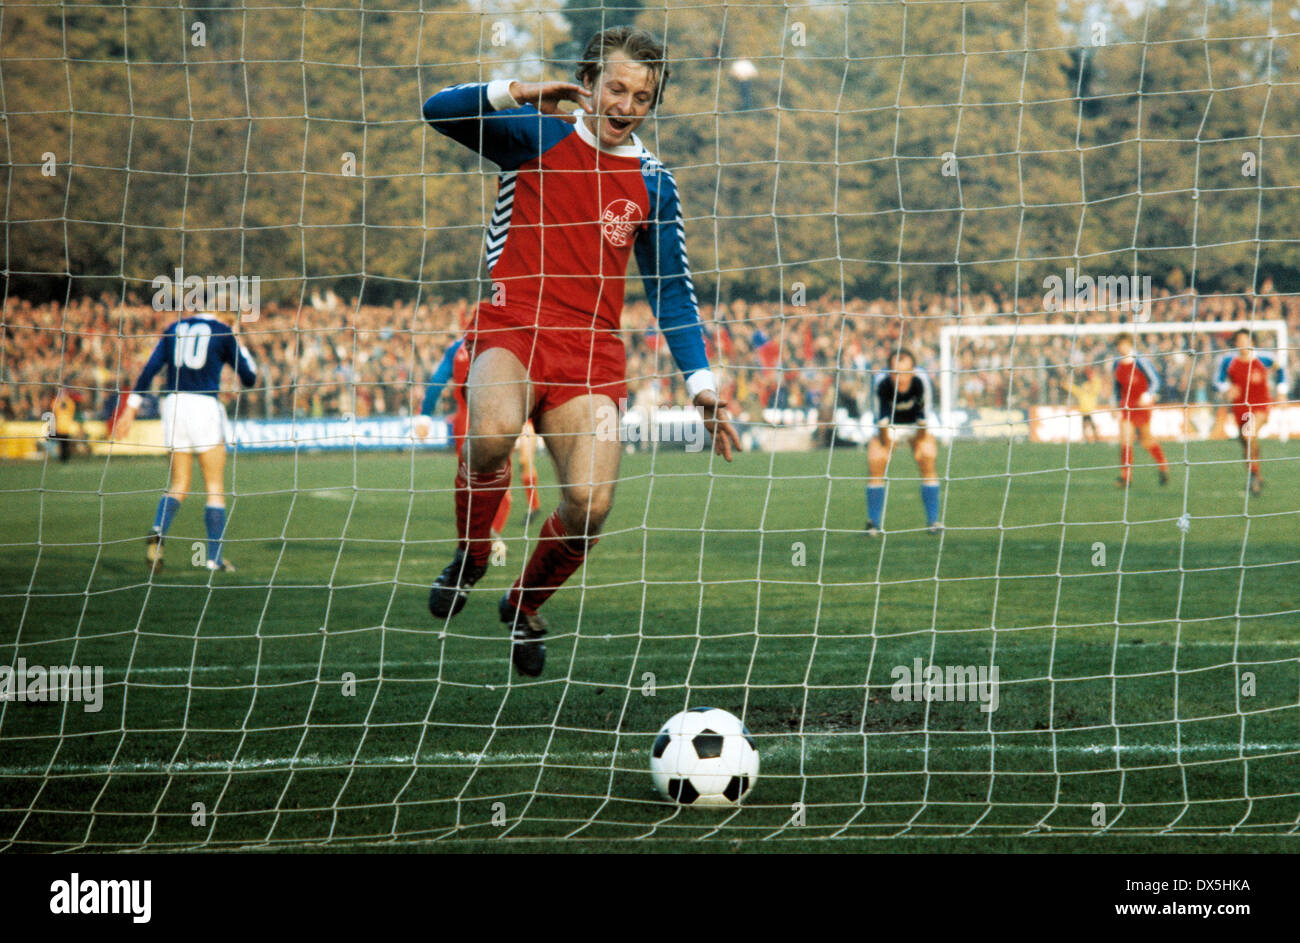 football, Bundesliga, 1975/1976, Grotenburg Stadium, FC Bayer 05 Uerdingen versus FC Schalke 04 3:2, Lorenz-Guenther Koestner (Uerdingen) rejoicing at his goal for 3:1 by penalty resulting from a foul - Stock Image